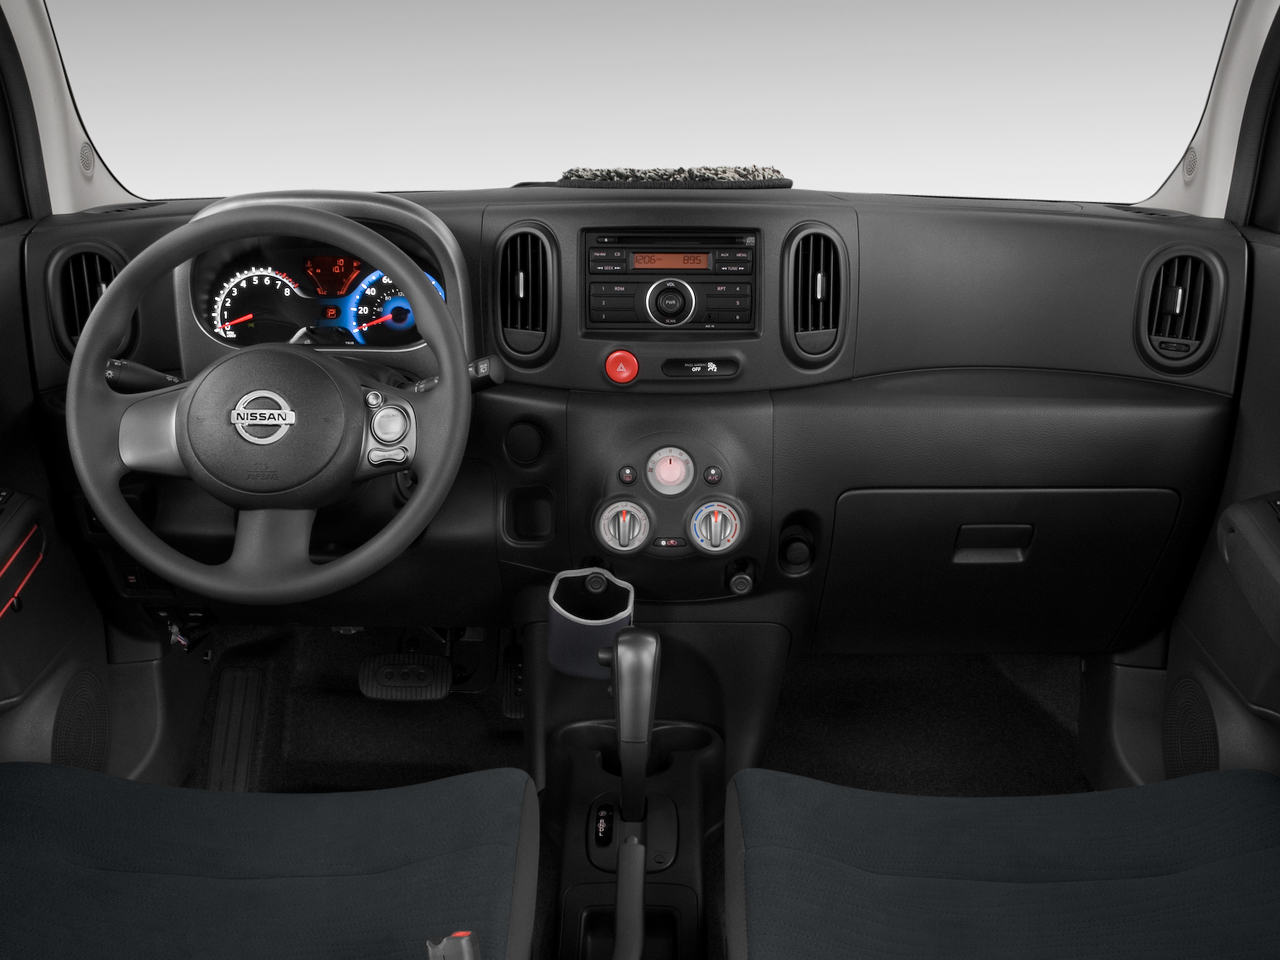 2009 nissan cube s nissan midsize suv review. Black Bedroom Furniture Sets. Home Design Ideas